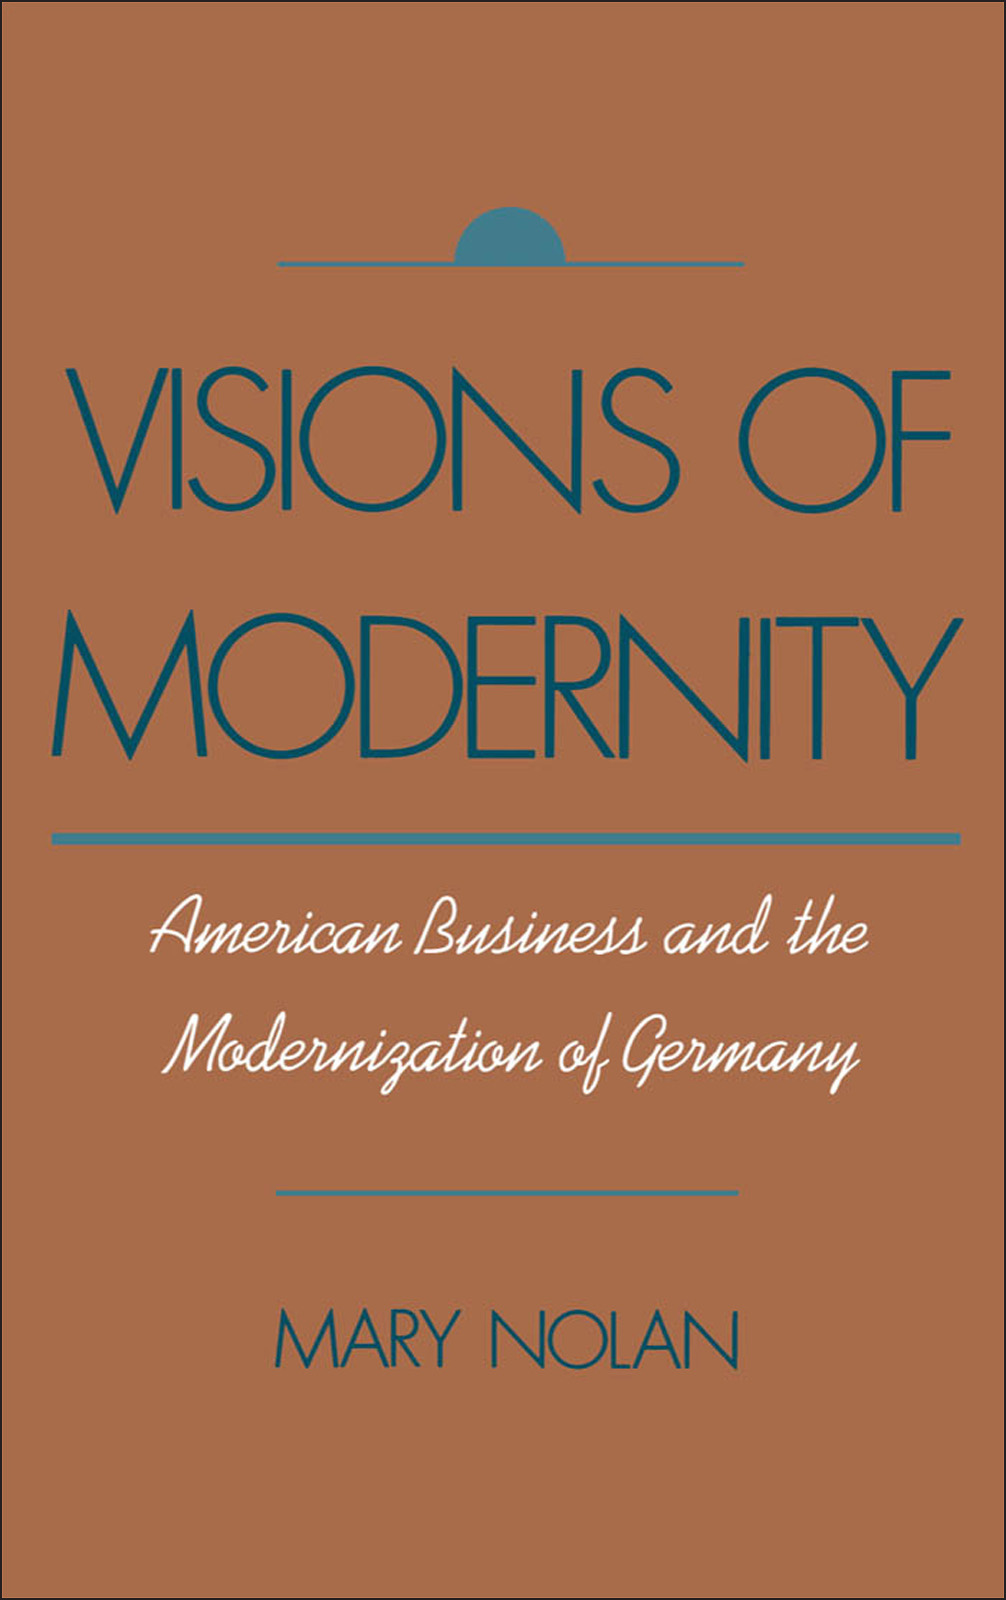 Visions of Modernity:American Business and the Modernization of Germany